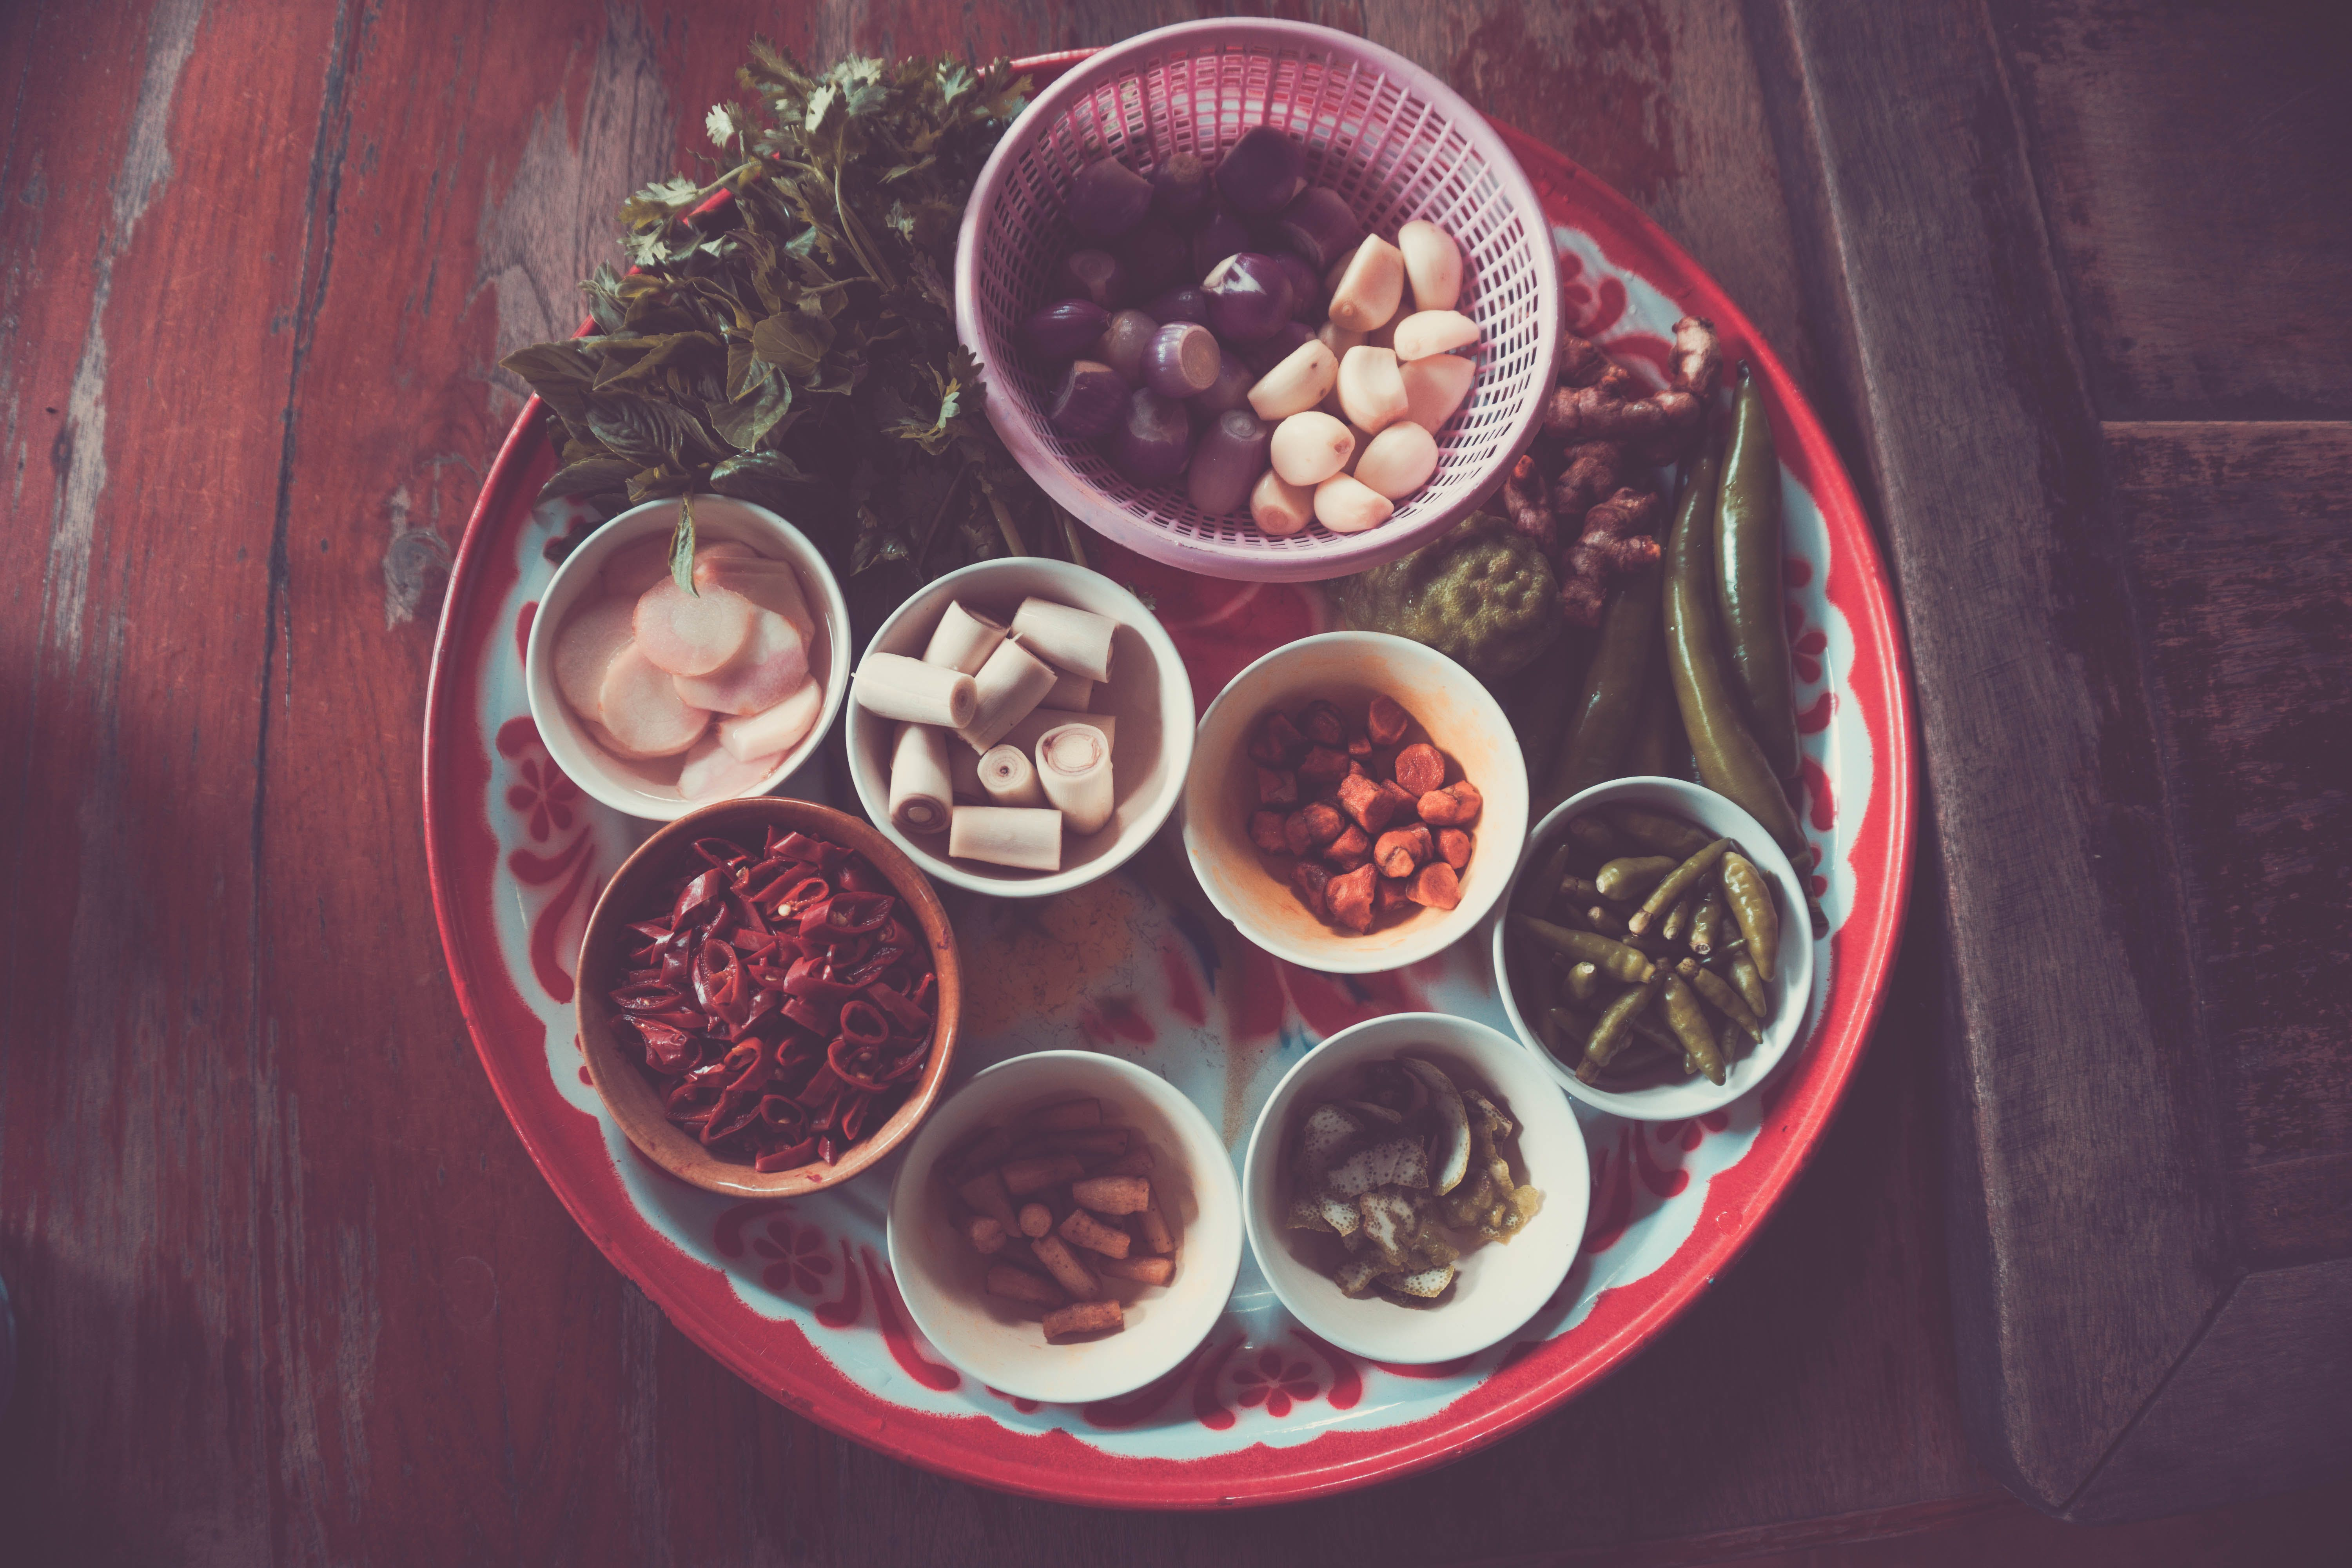 Assorted Spices on White and Red Plate on Brown Wooden Table